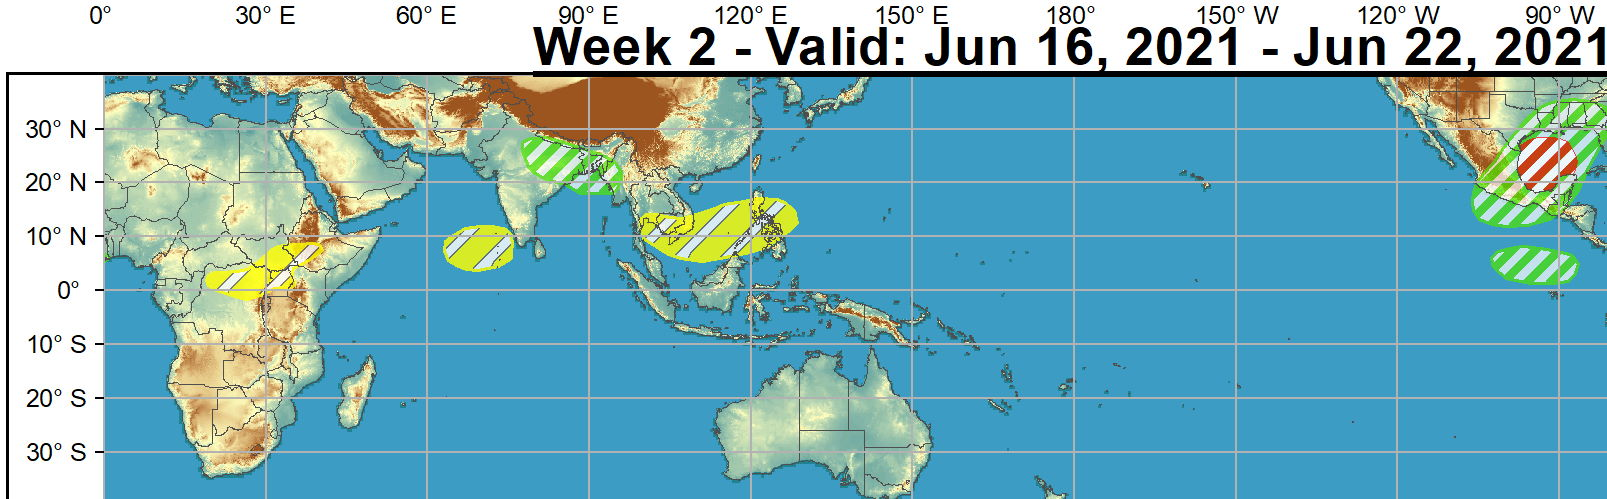 For week-2, there is more uncertainty in the TC perspective across the Pacific and Indian Basins. Ensembles favor an area of surface low pressure to persist over western India and the Bay of Bengal which may lead to additional tropical cyclogenesis in the region, however confidence is too low at this time to include in the outlook.